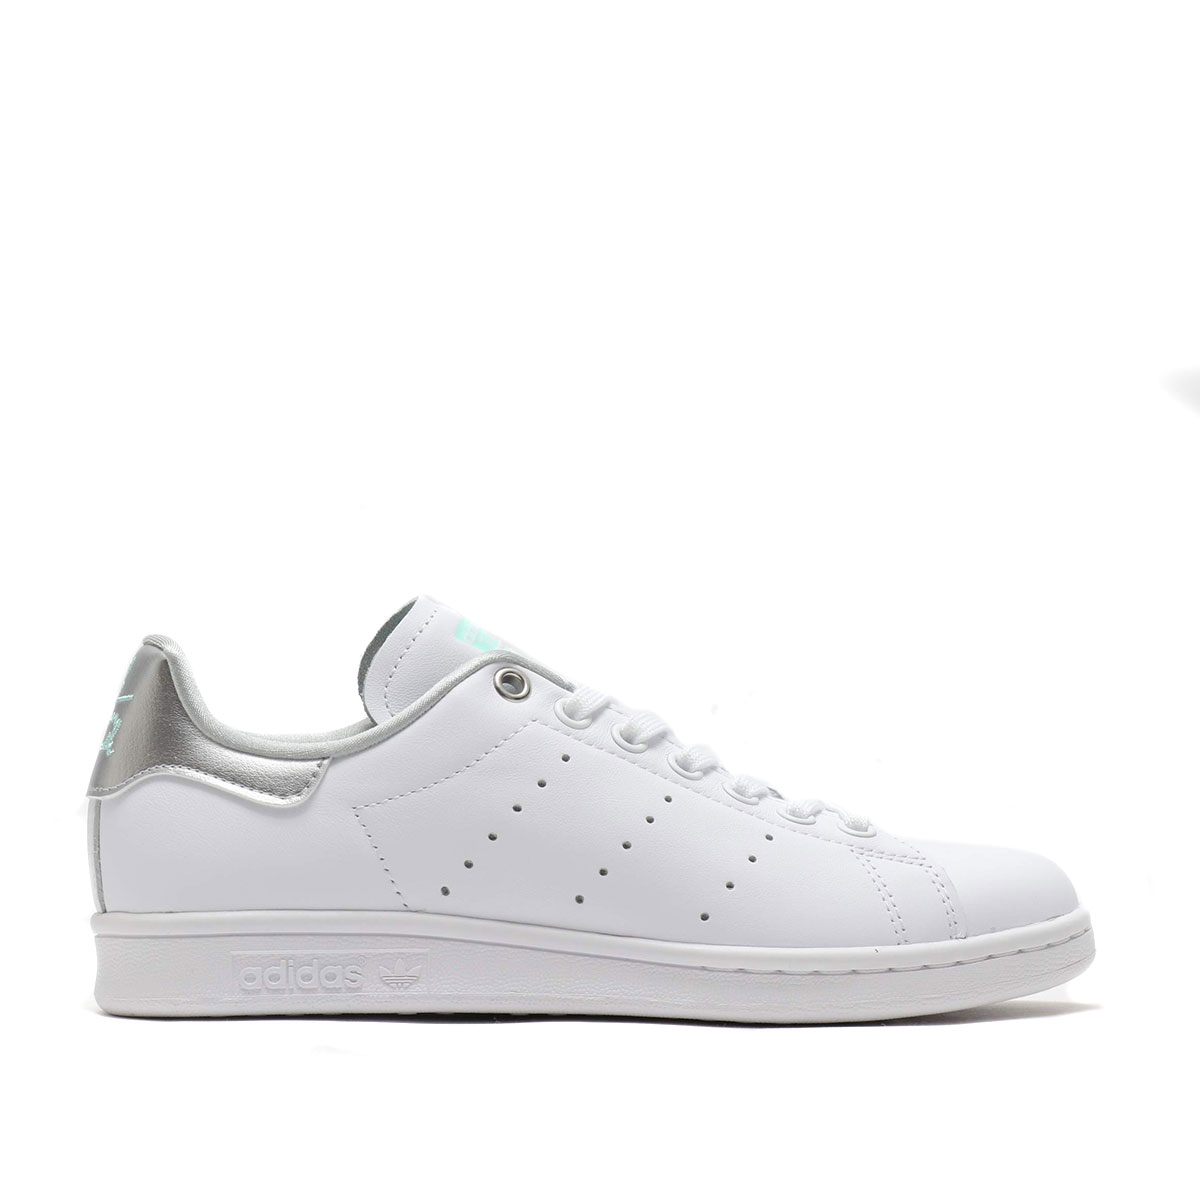 cheapest buy sale top quality adidas Originals STAN SMITH W (FTWR WHITE/SILVER MET./CLEAR MINT) (Adidas  originals Stan Smith W)